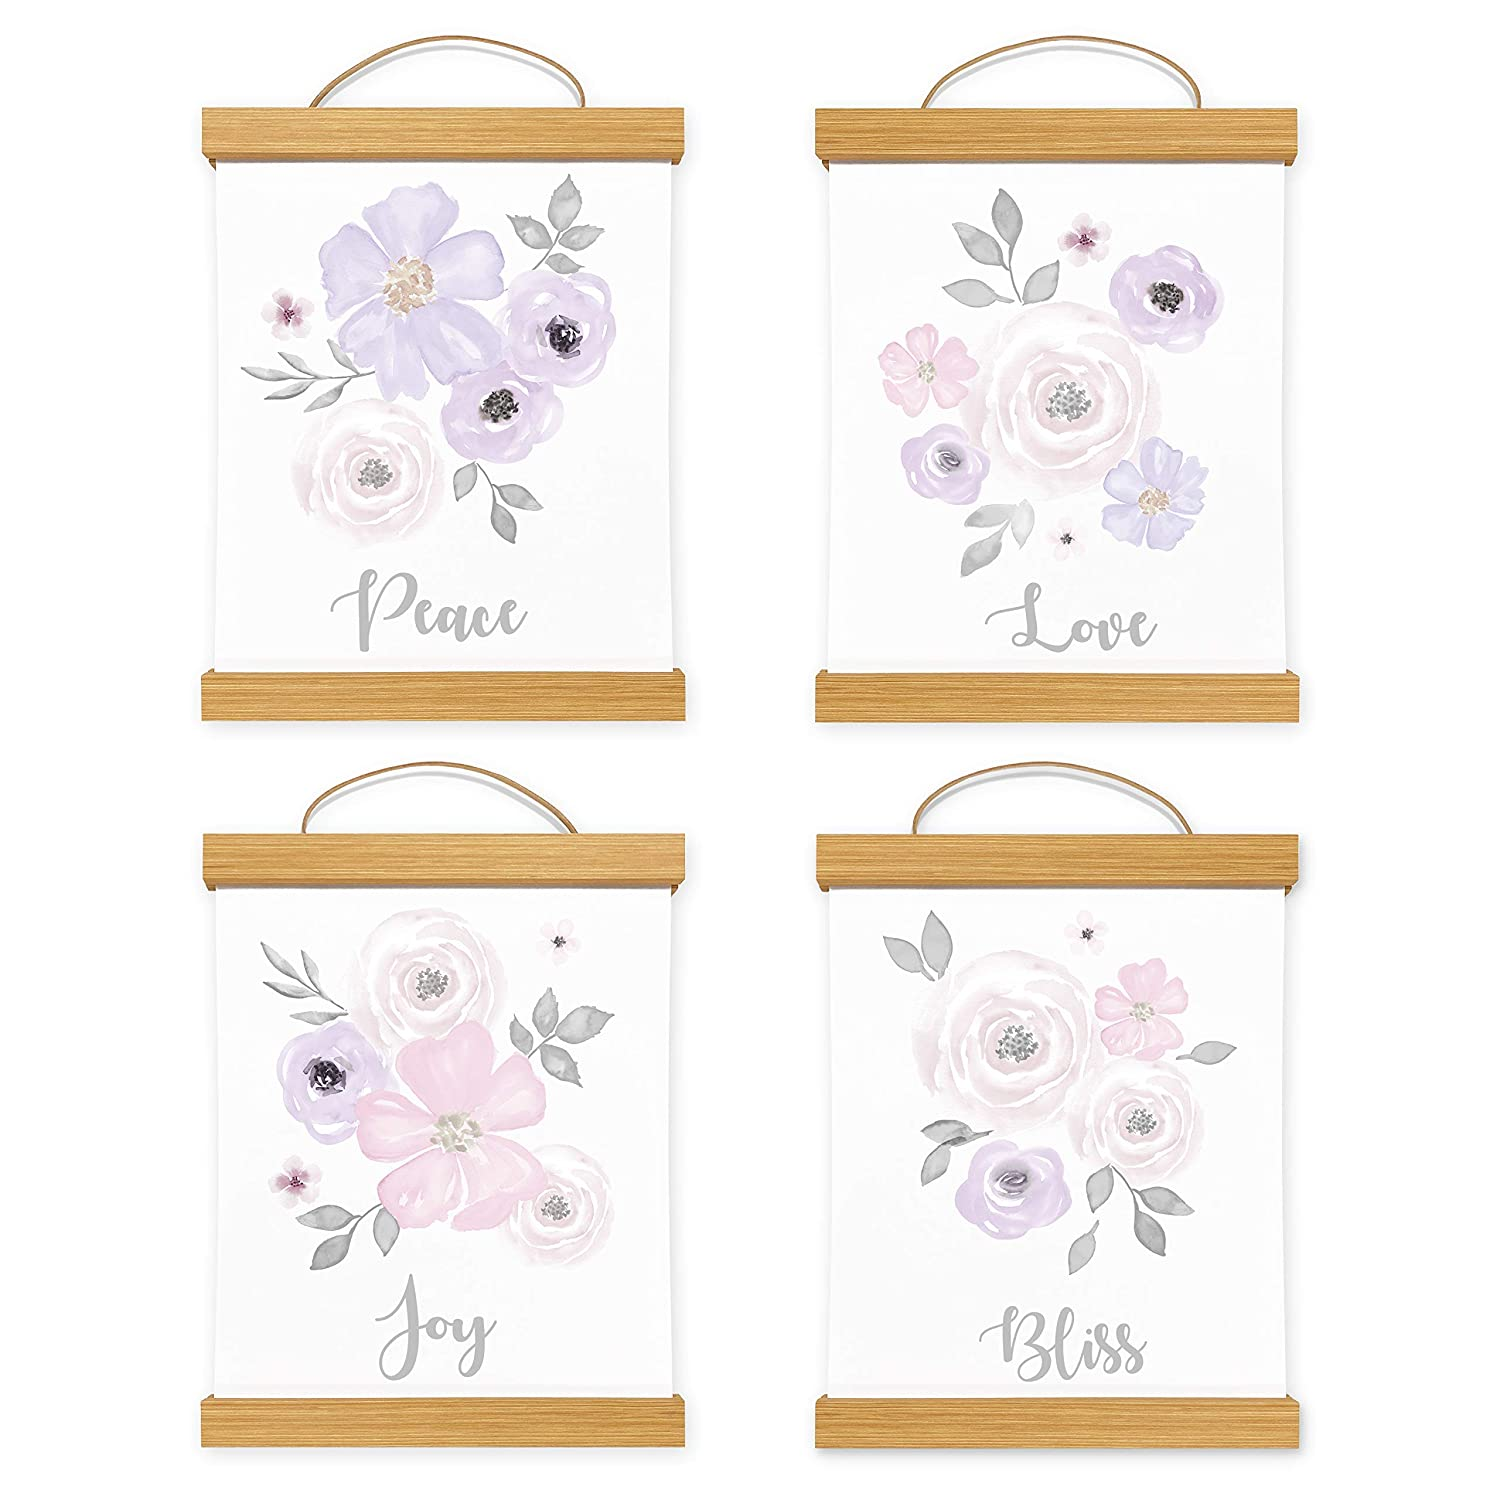 Framed Sweet Jojo Designs Lavender Purple Pink Grey White Wall Art Prints Room Decor Baby Nursery Kid Watercolor Floral Collection - Set of 4 - Peace Love Joy Bliss With Wooden Hanging Magnetic Frames